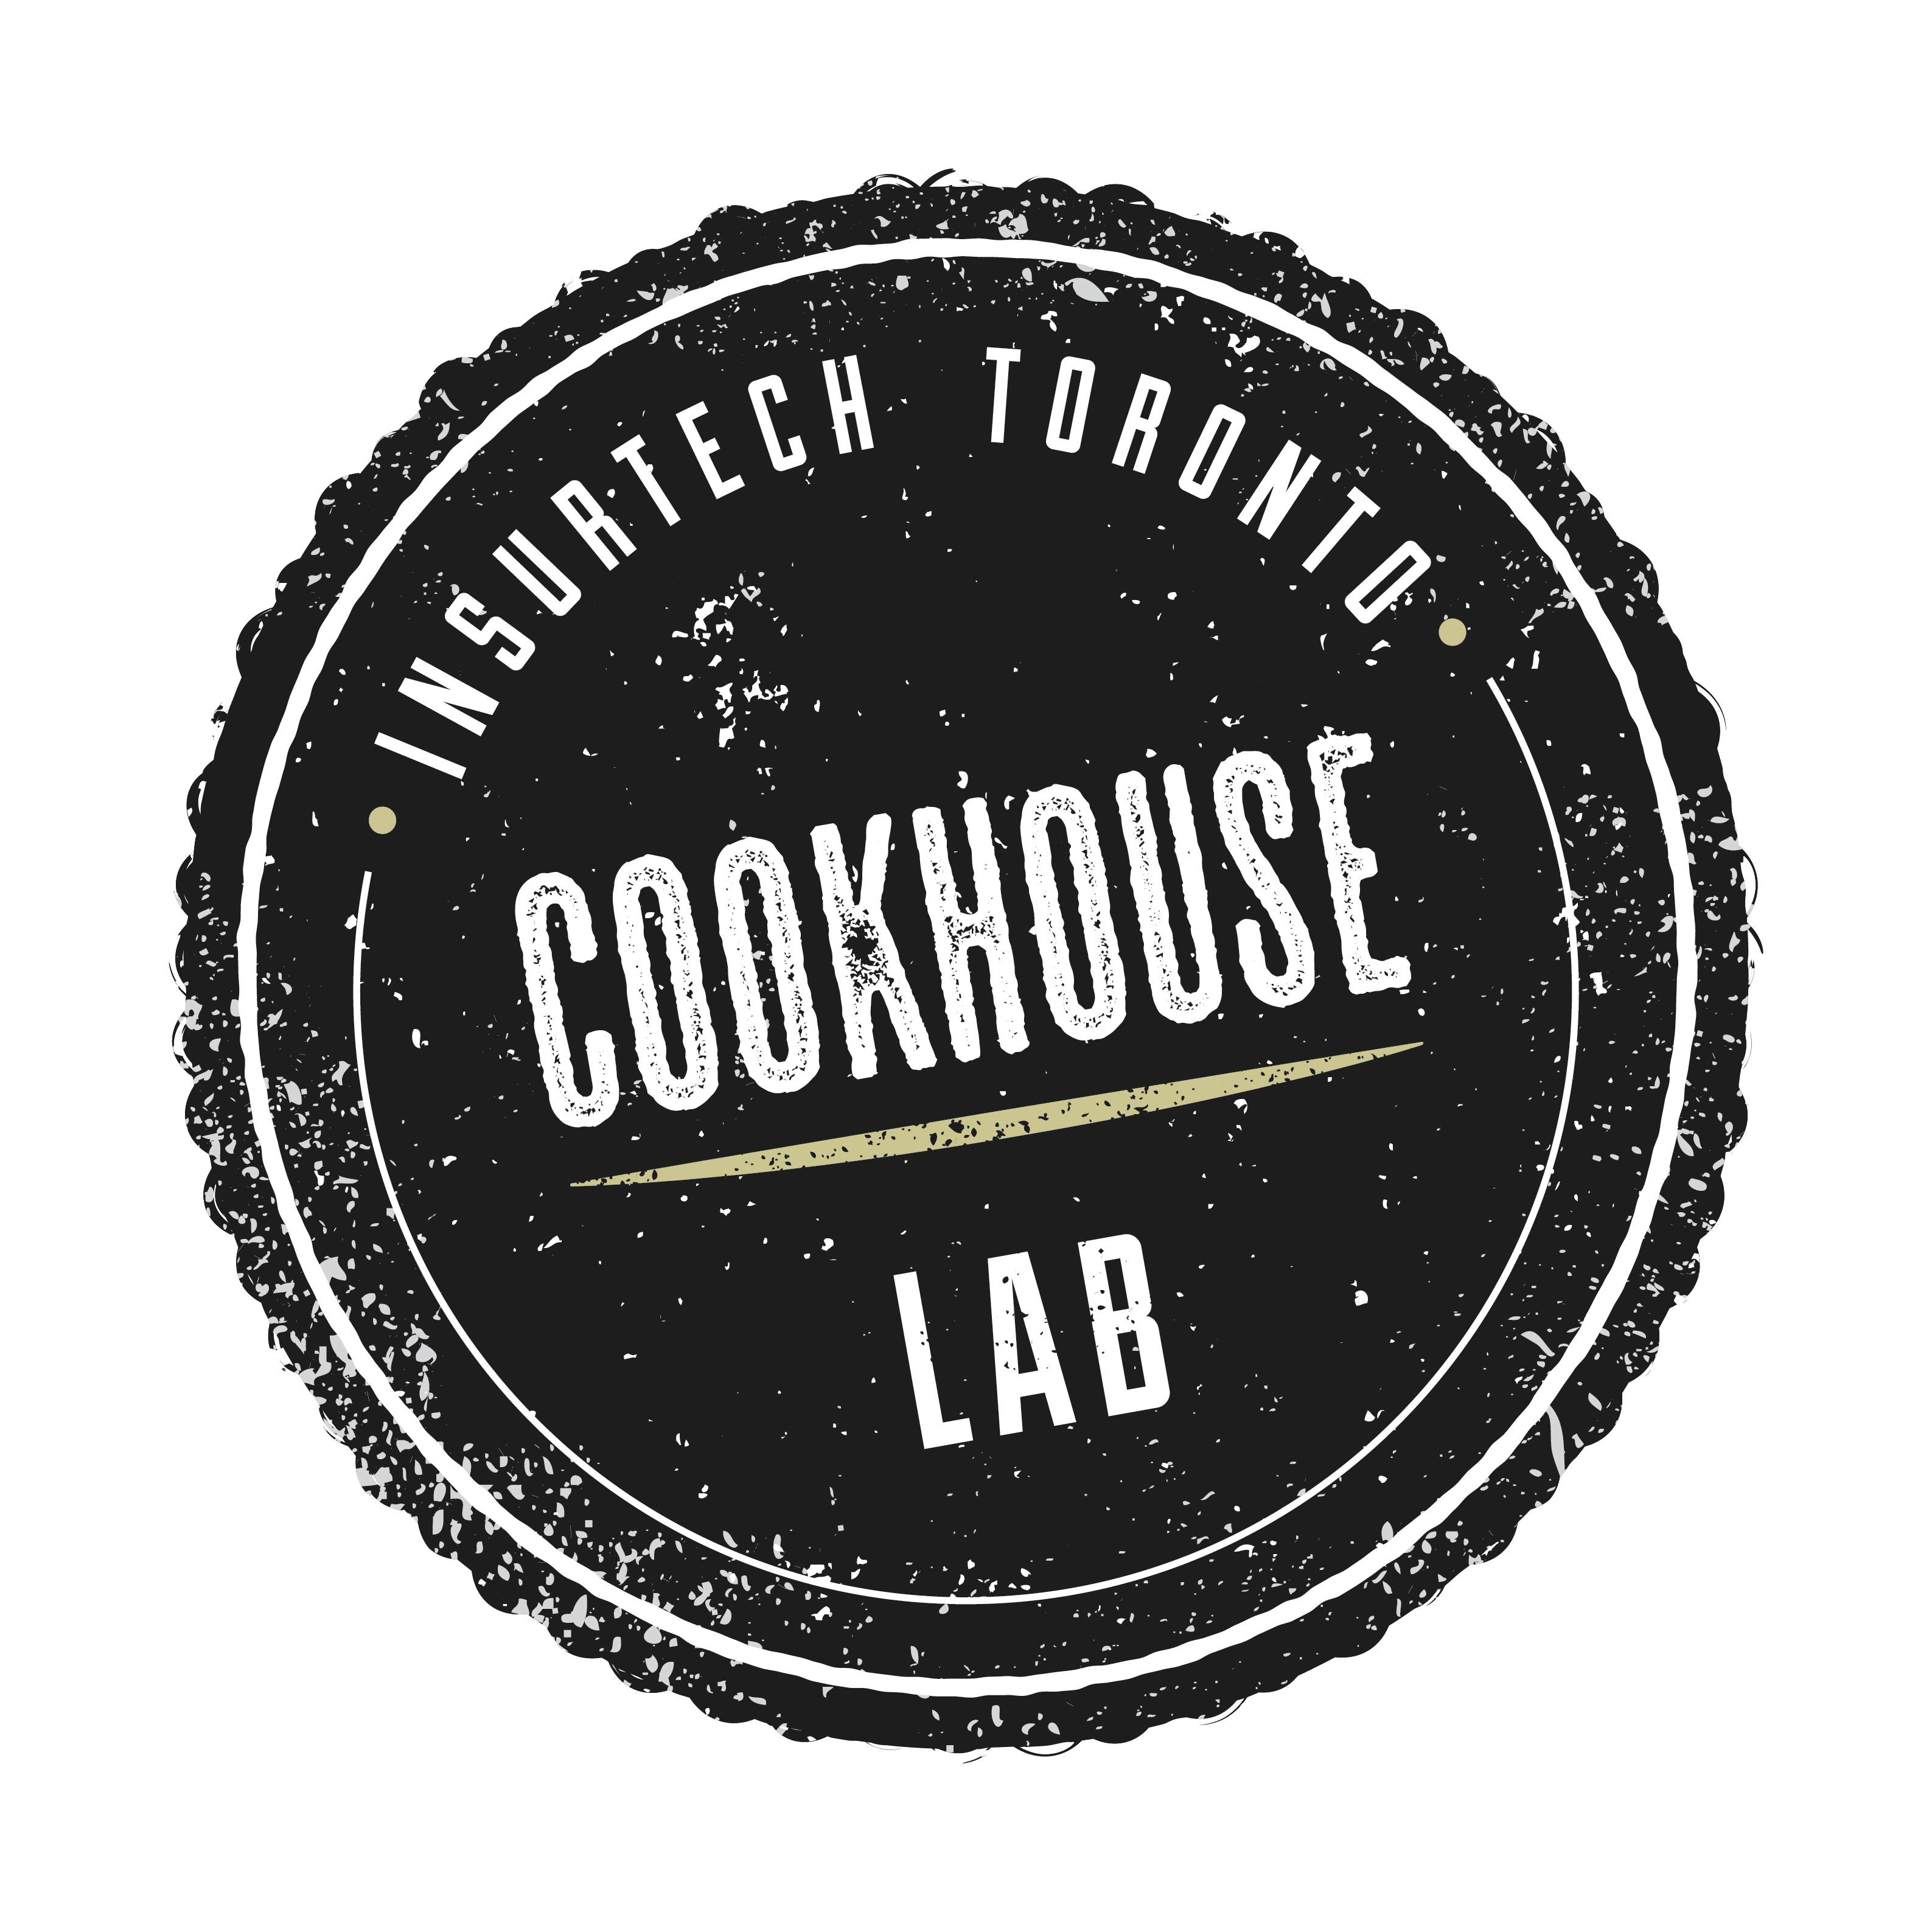 Cookhouse Lab Launches in Toronto: Insurance, Technology ...